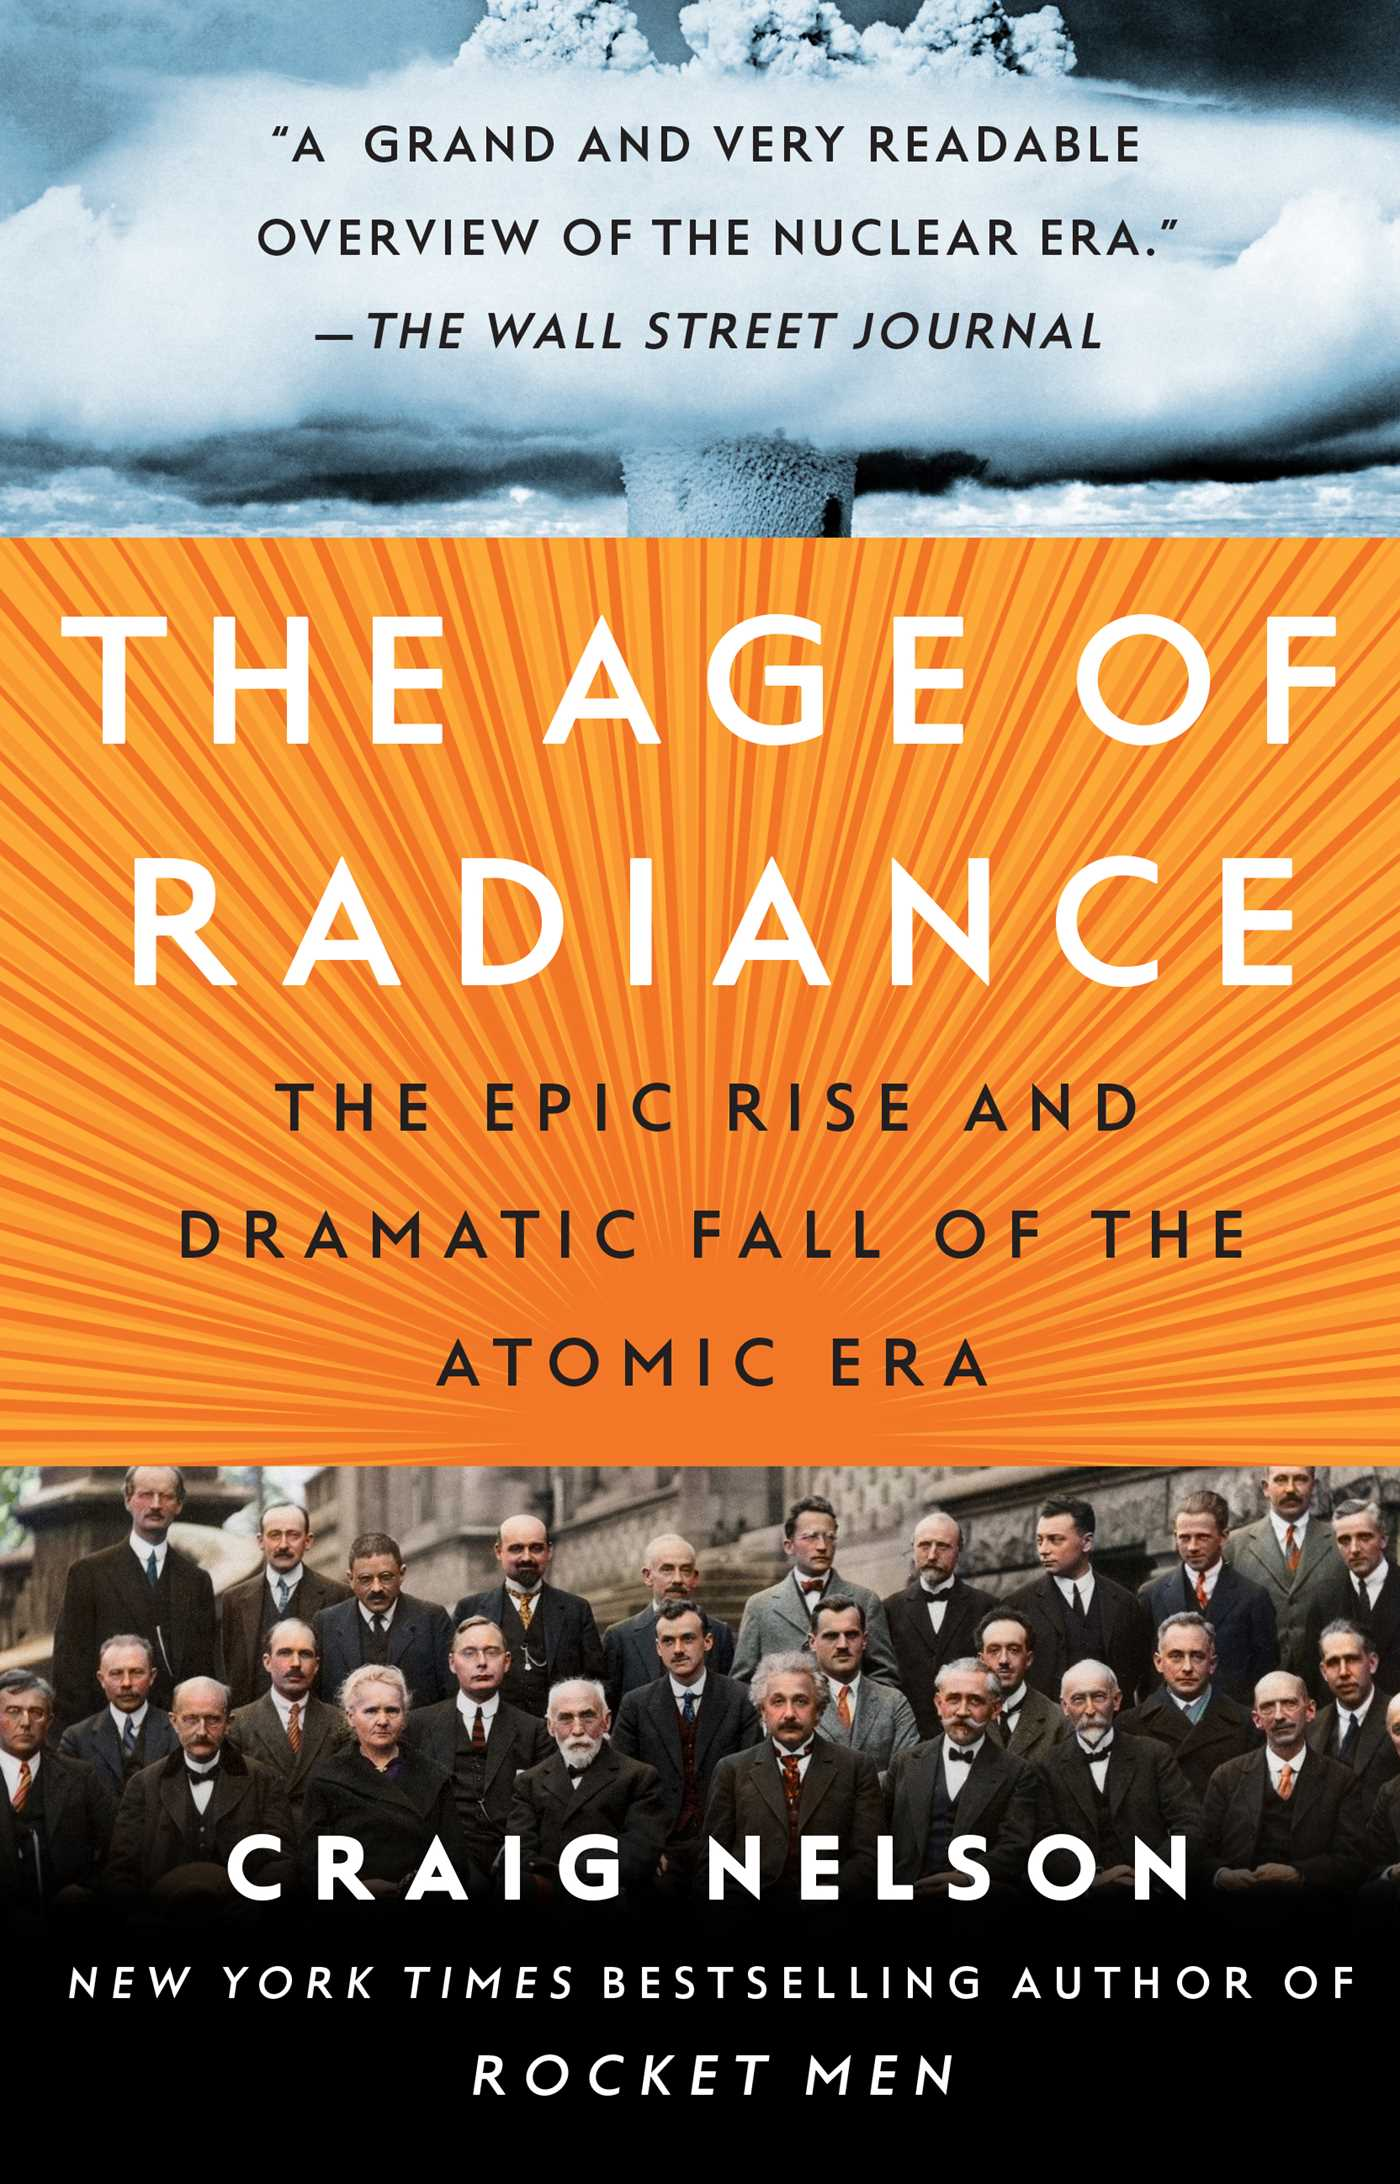 The-age-of-radiance-9781451660456_hr